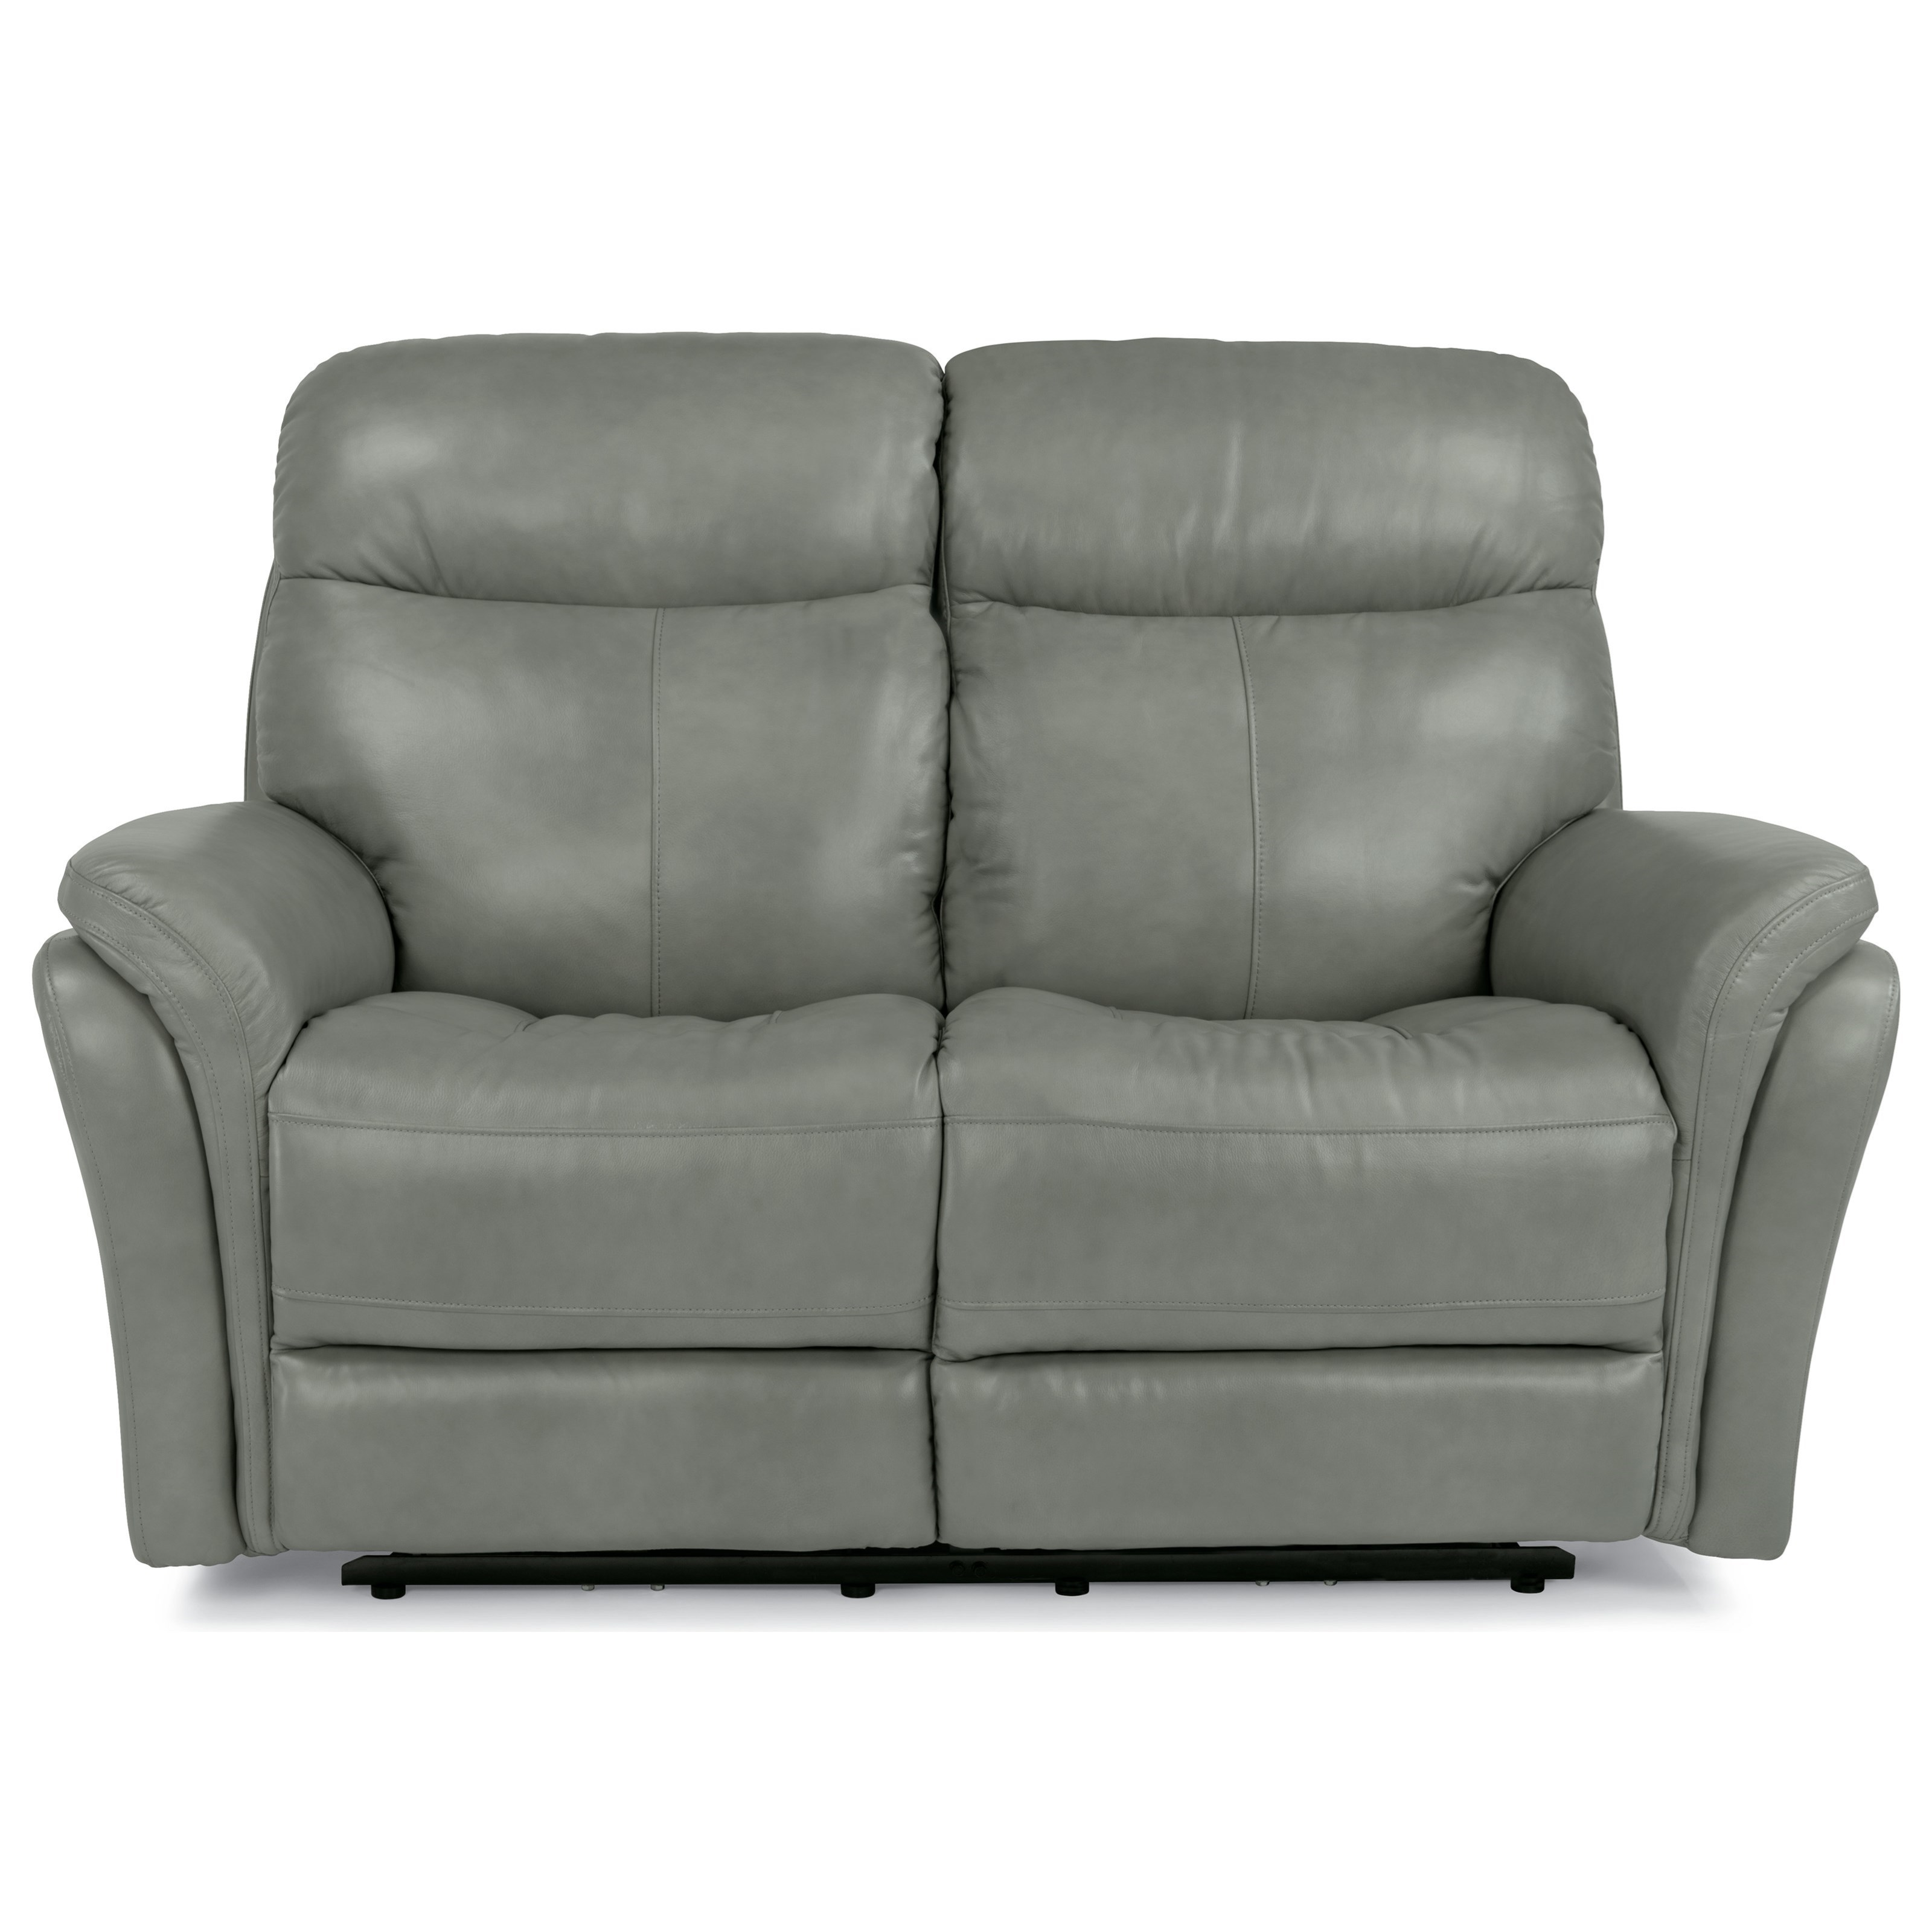 Flexsteel Latitudes Zoey Power Reclining Love Seat with Power